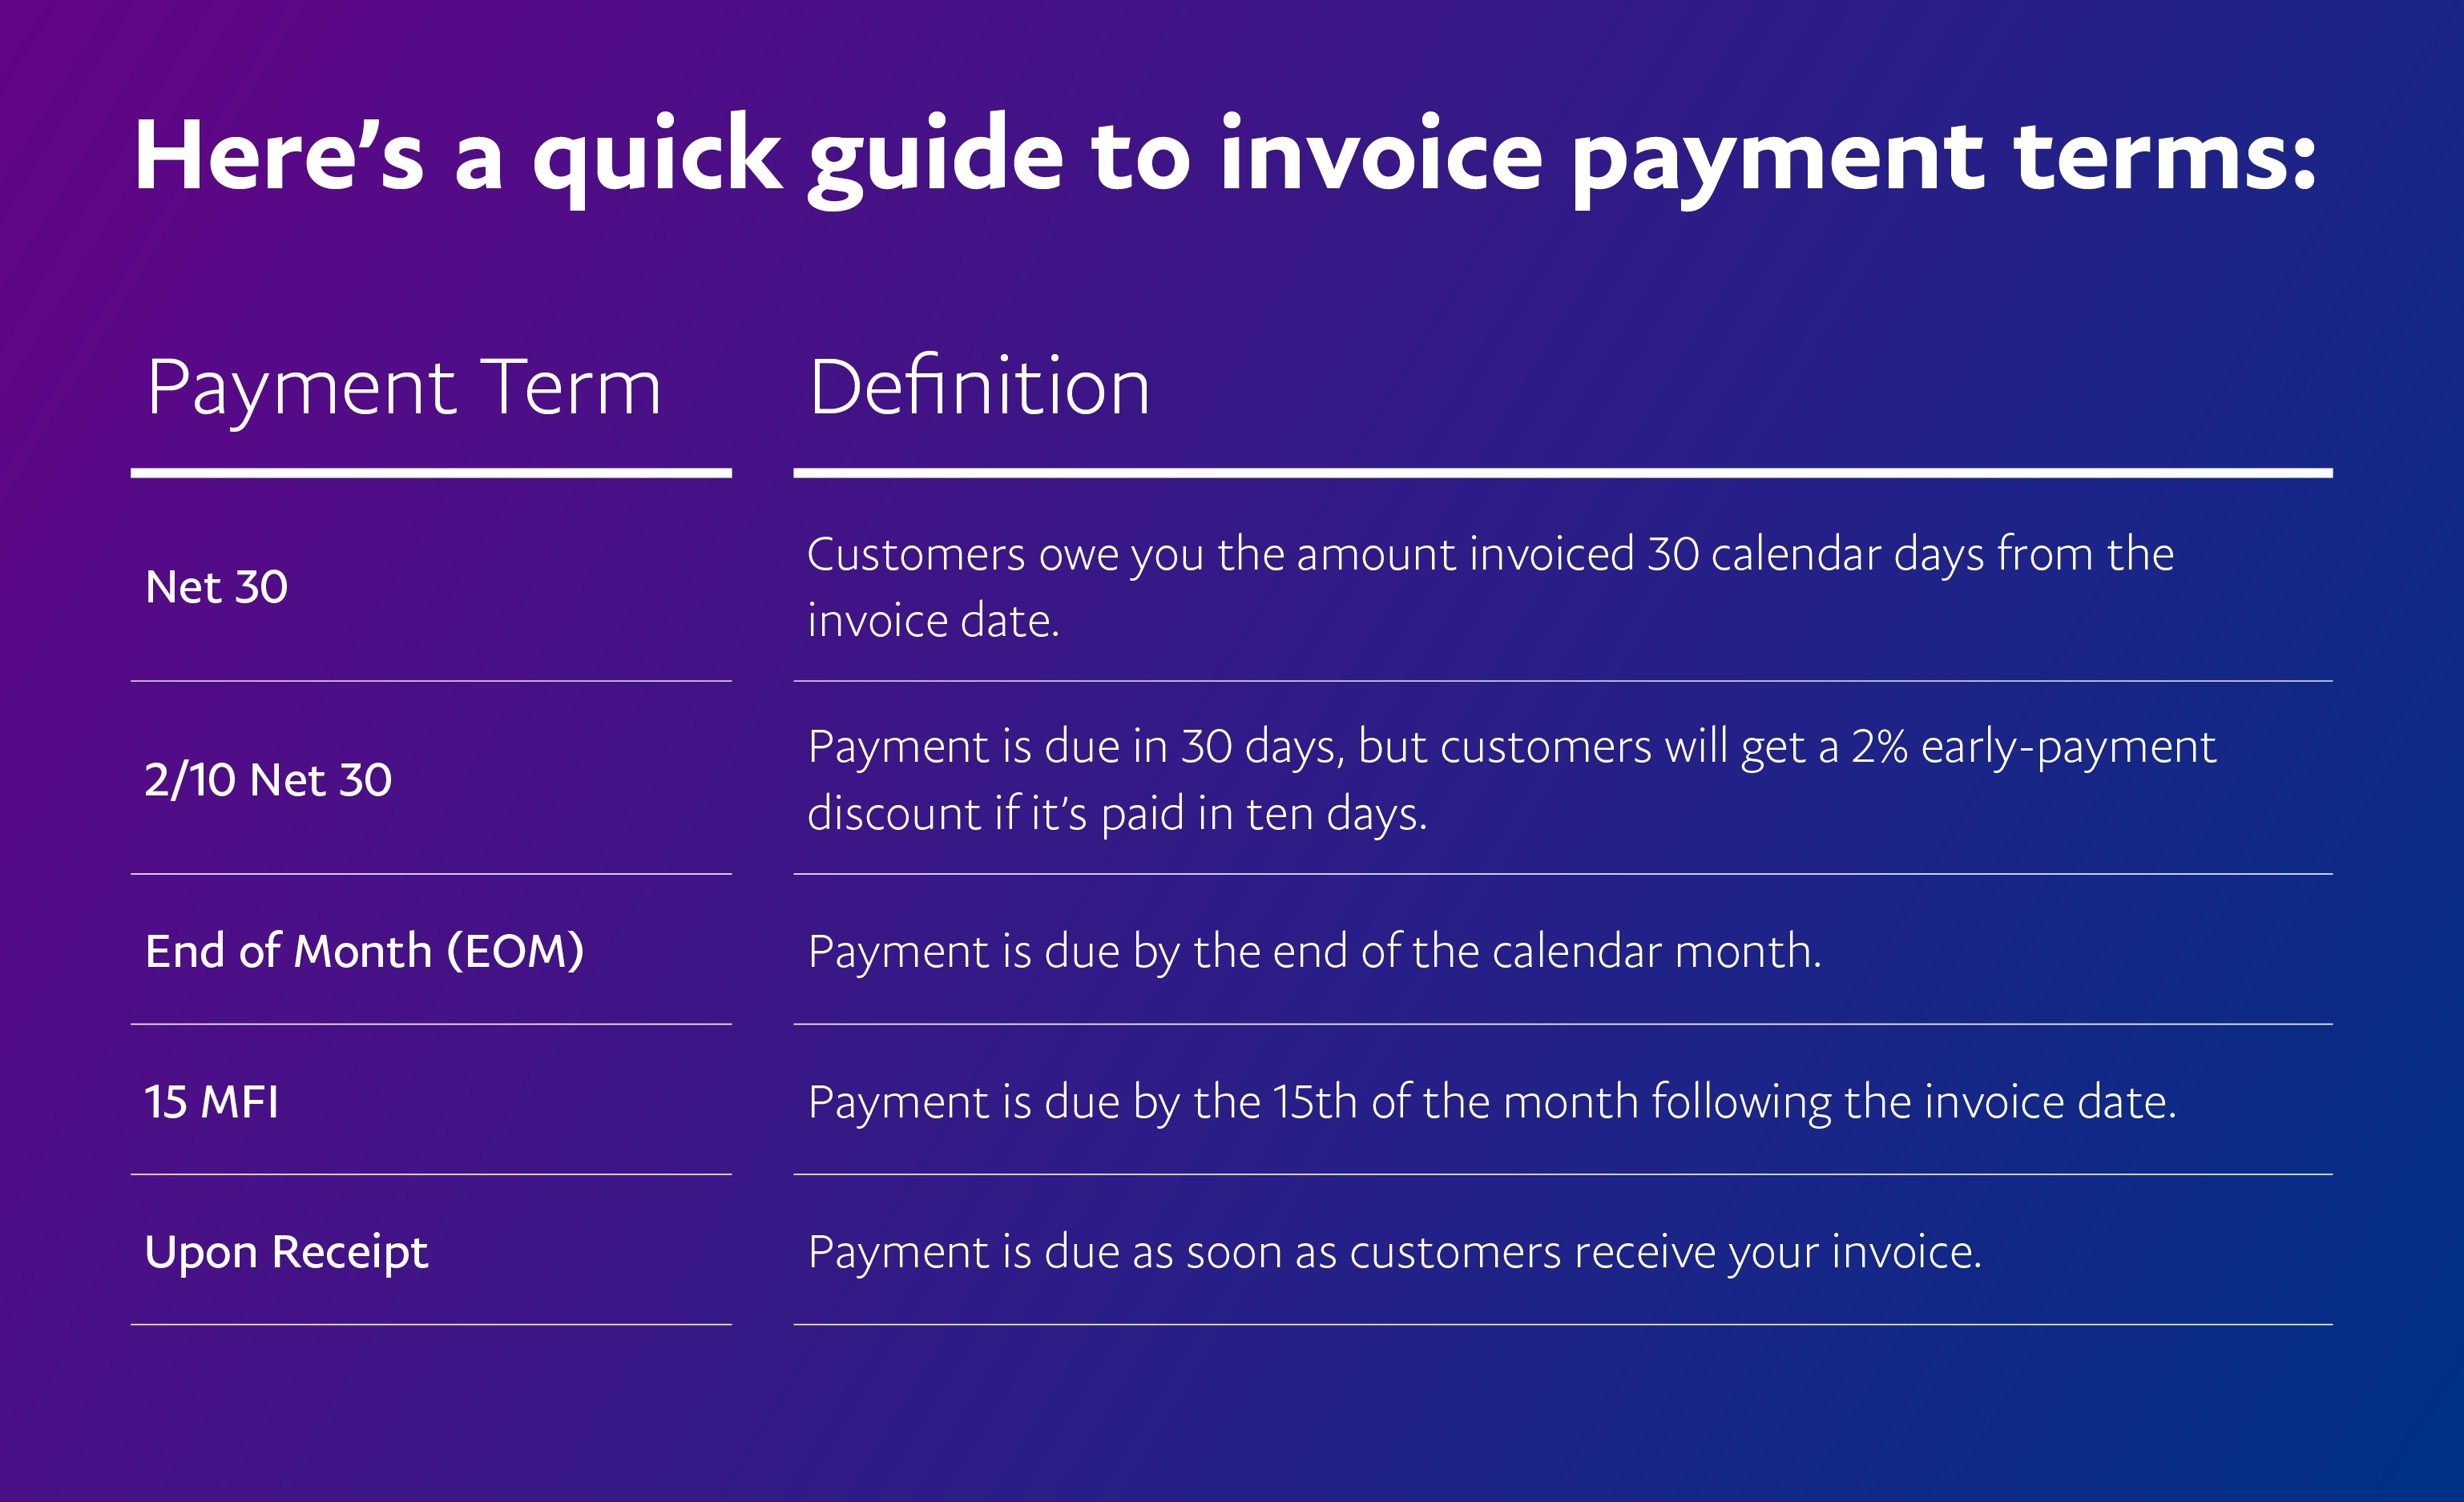 a quick guide to understand invoice payment terms paypal meaning of we will credit december 2017 invoice